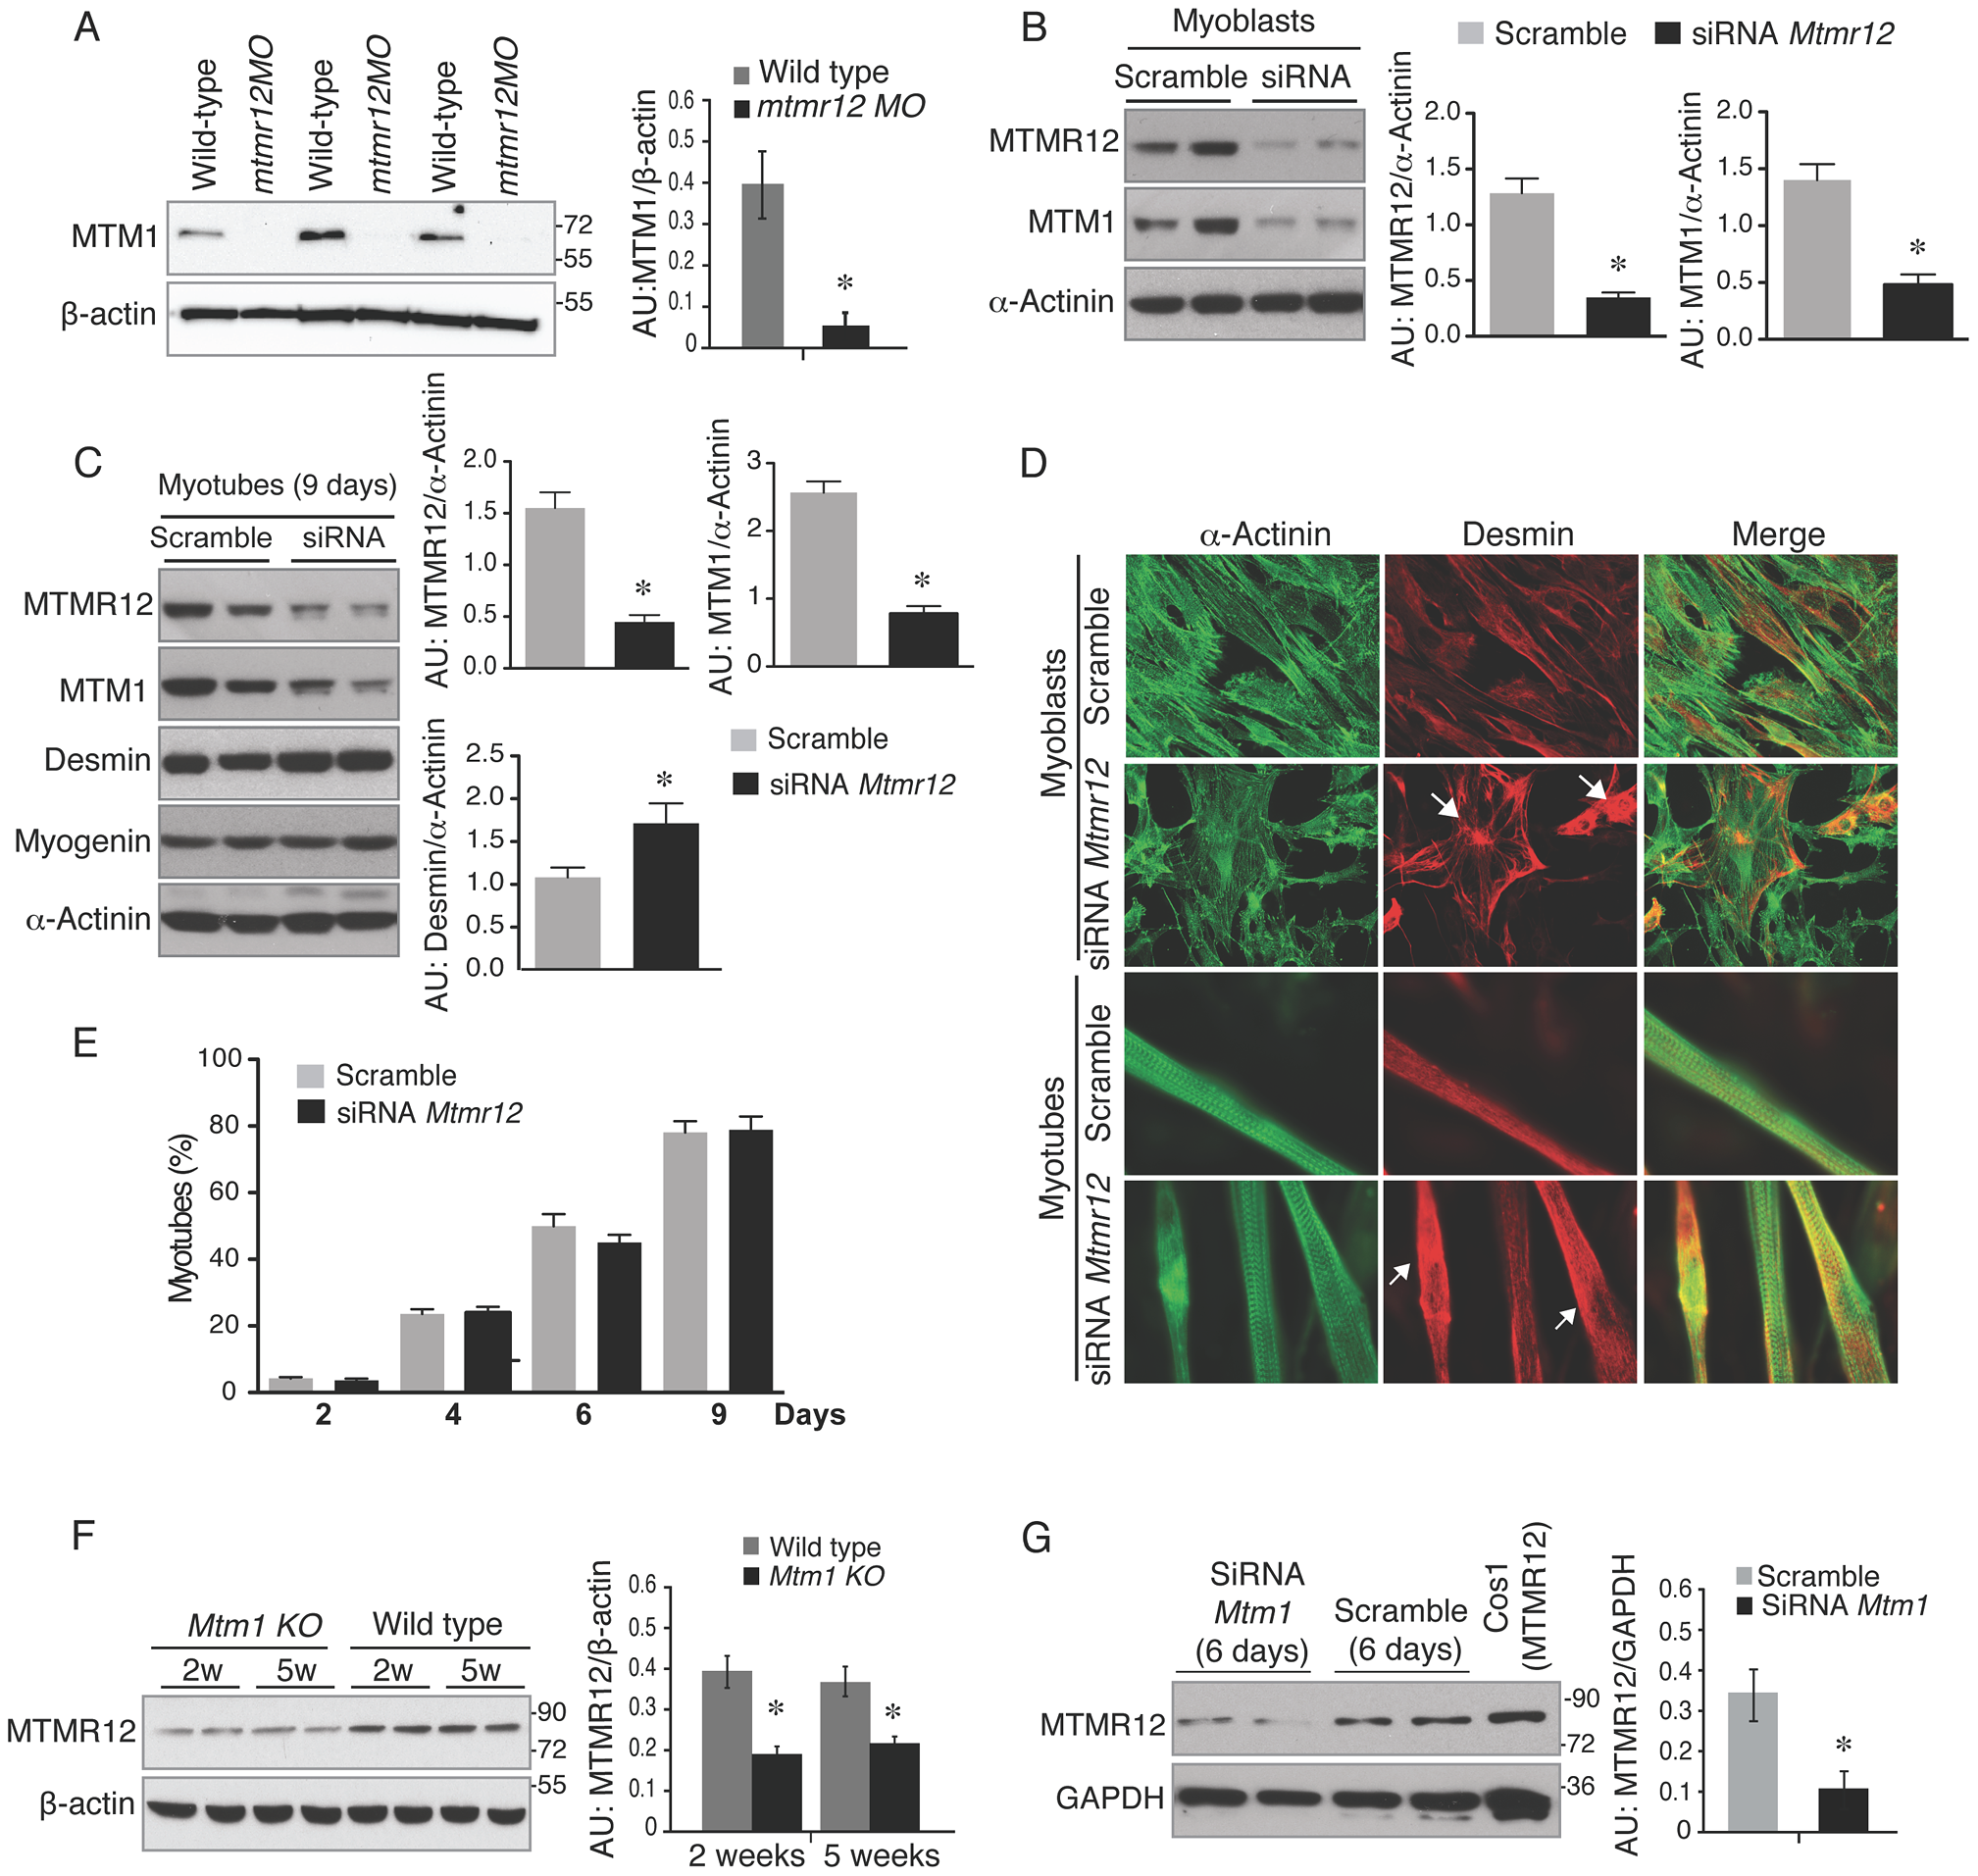 Loss of protein stability in the absence of myotubularin-MTMR12 interactions.